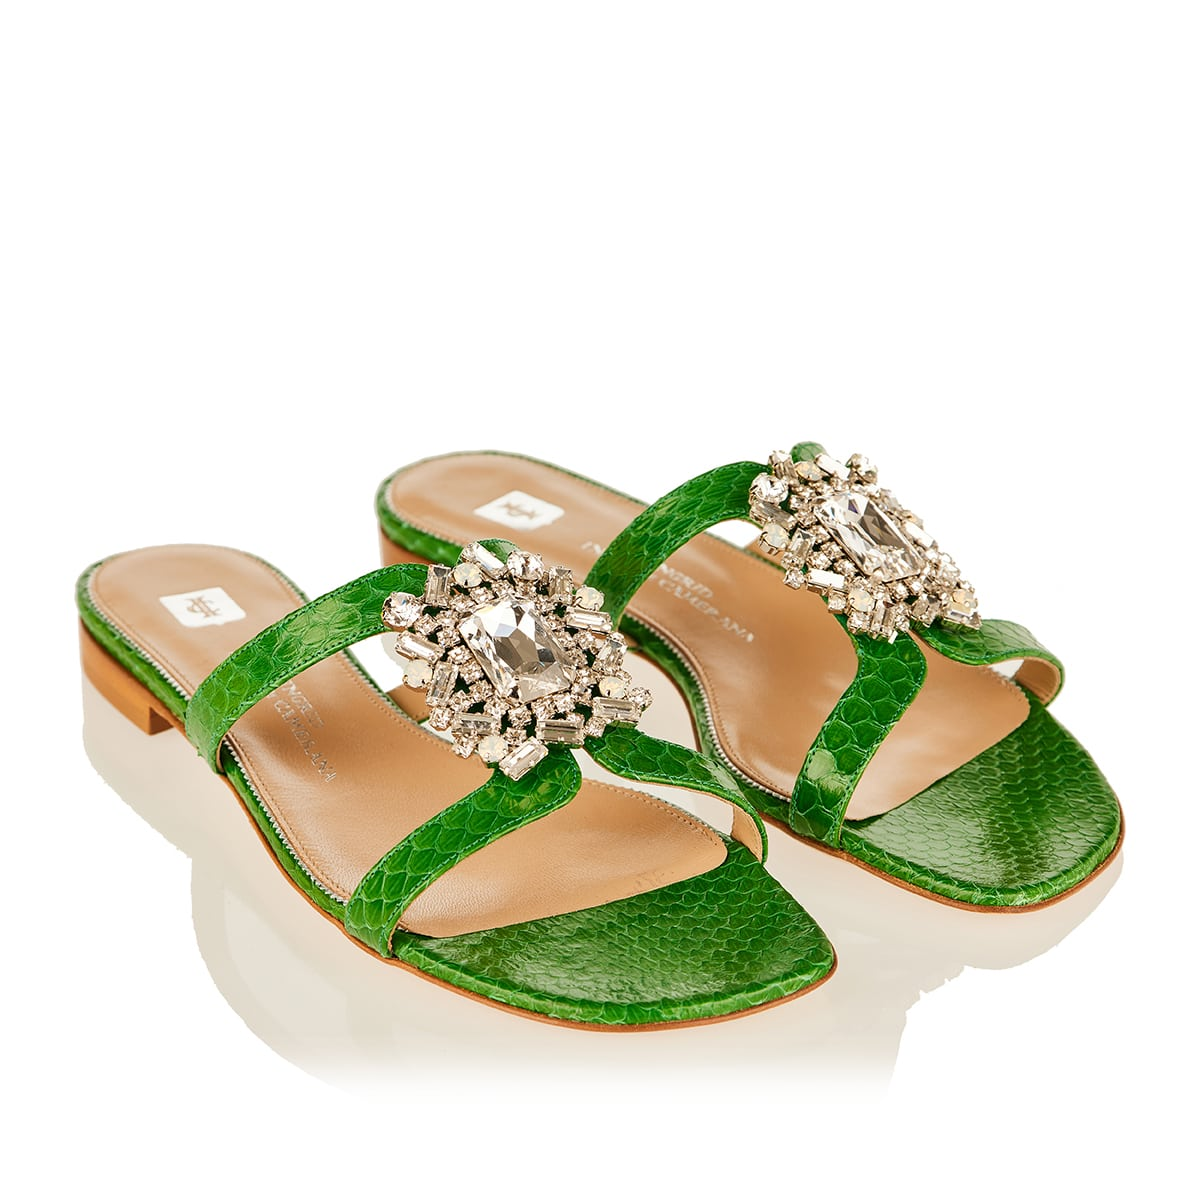 Chloé crystal-embellished croc-effect sandals